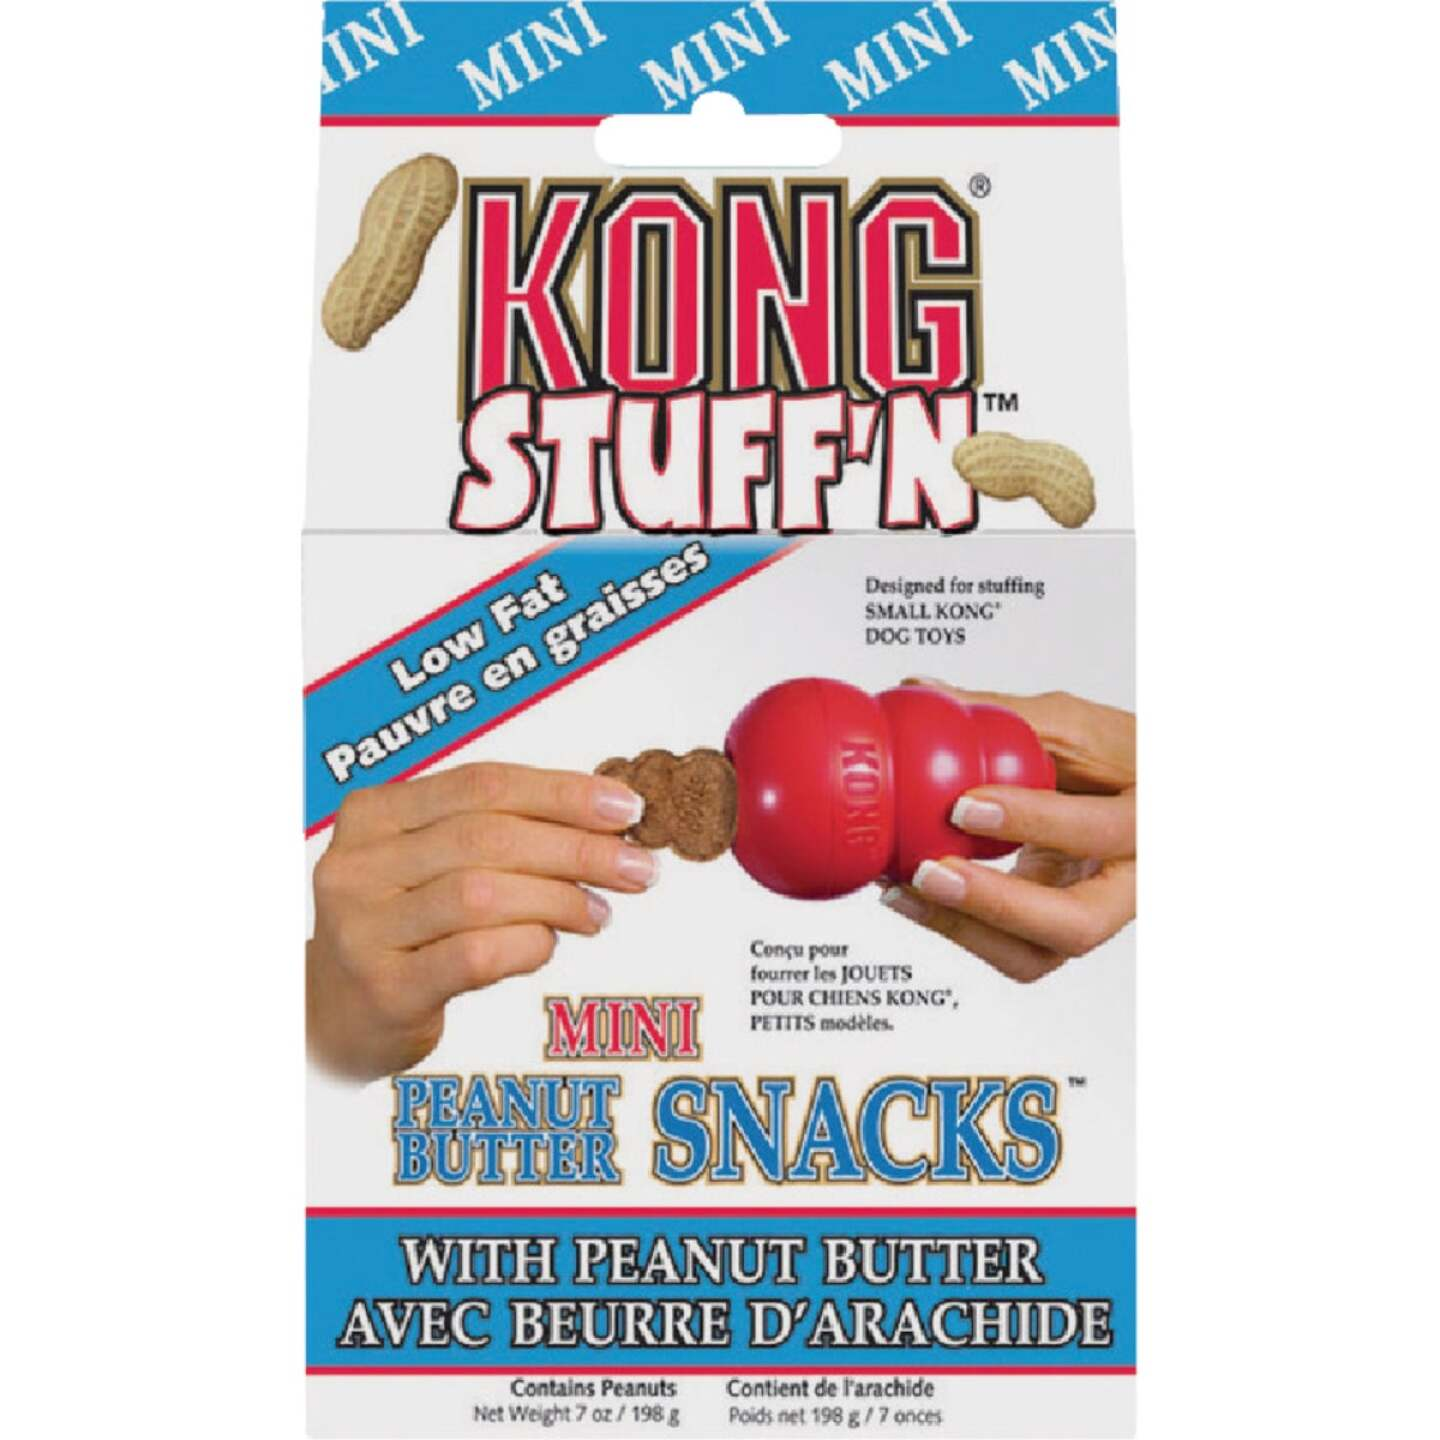 Kong Stuff'N Small Dog Peanut Butter Flavor Crunchy Dog Treat, 7 Oz. Image 1